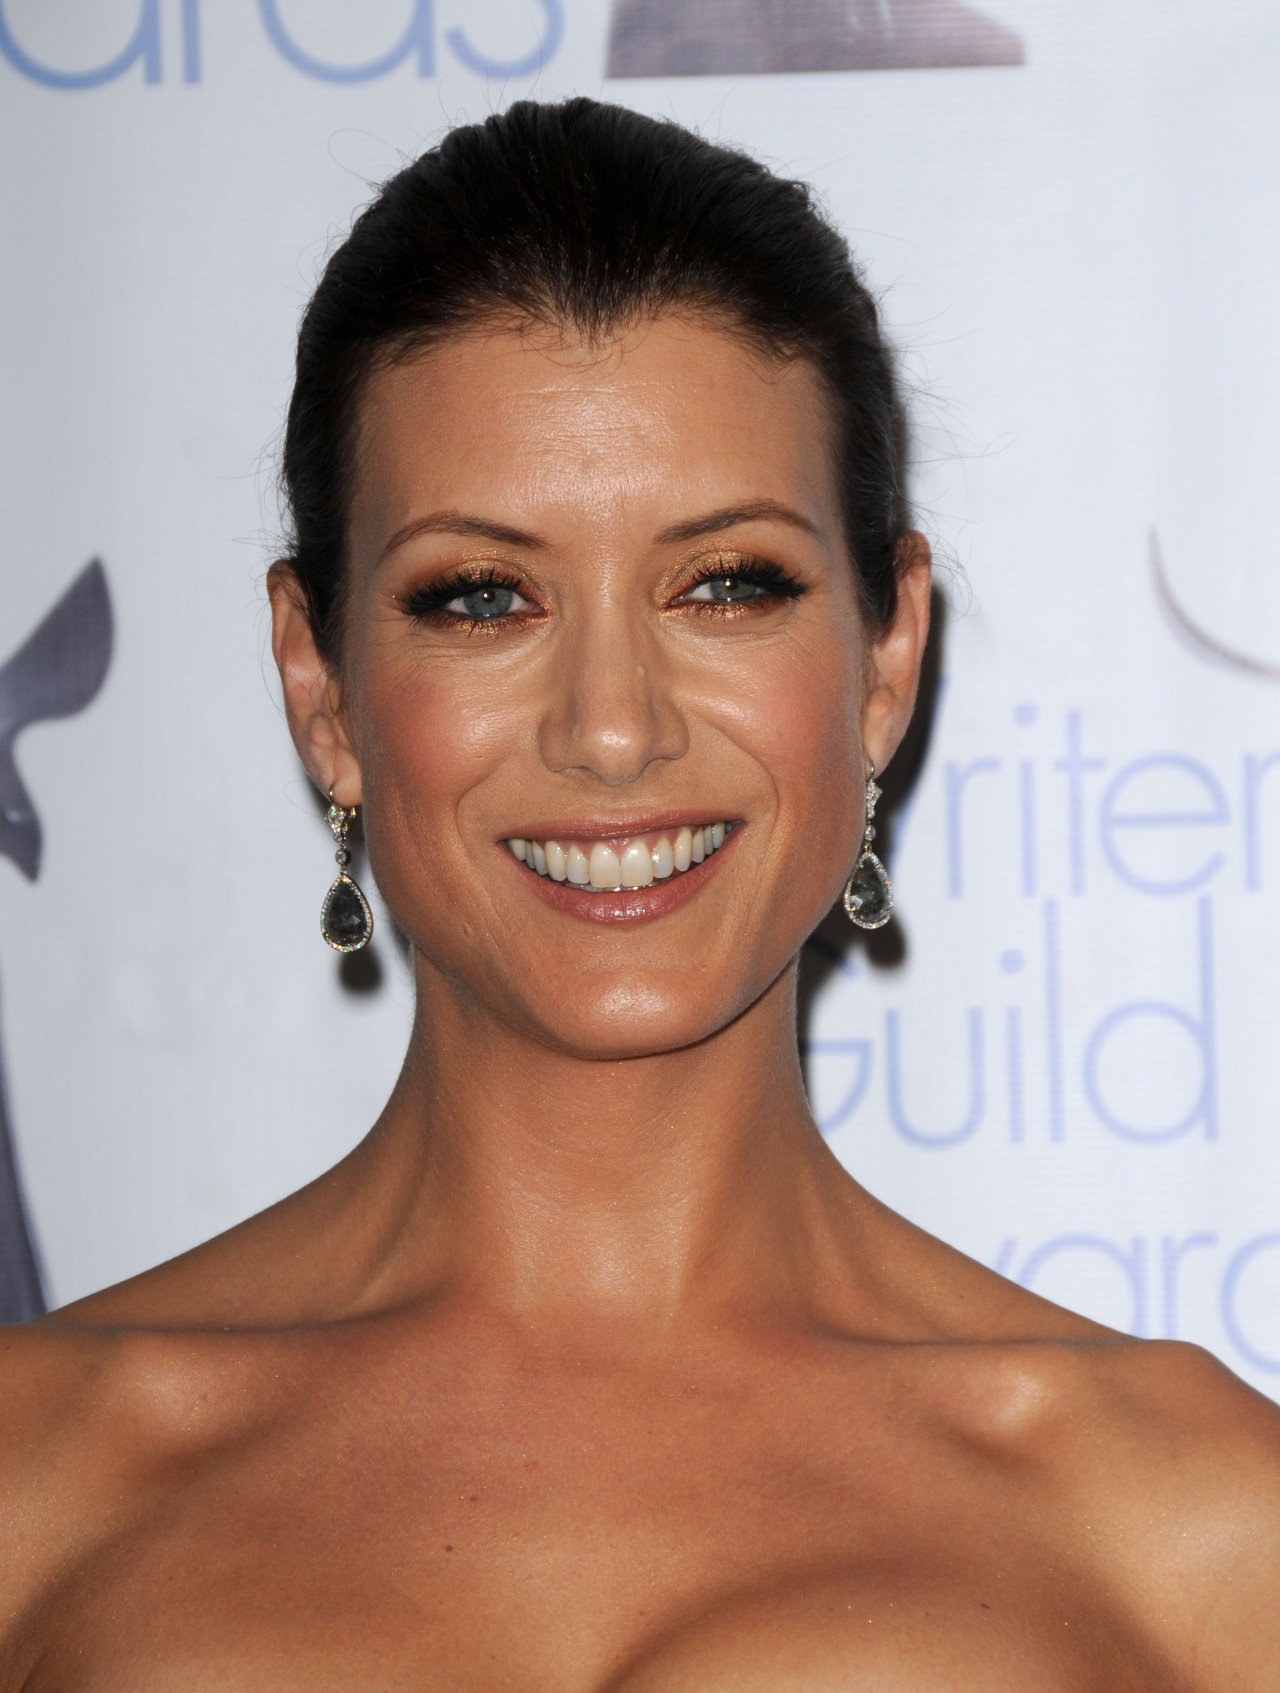 kate walsh boyfriend perfumekate walsh instagram, kate walsh right back, kate walsh broken glass, kate walsh young, kate walsh grey's anatomy, kate walsh and catherine deneuve, kate walsh boyfriend perfume, kate walsh wiki, kate walsh makeup, kate walsh and wendie malick, kate walsh chicago, kate walsh trevor davis, kate walsh hair color, kate walsh come home, kate walsh house, kate walsh music, kate walsh periscope, kate walsh vocal, kate walsh peppermint radio, kate walsh interview